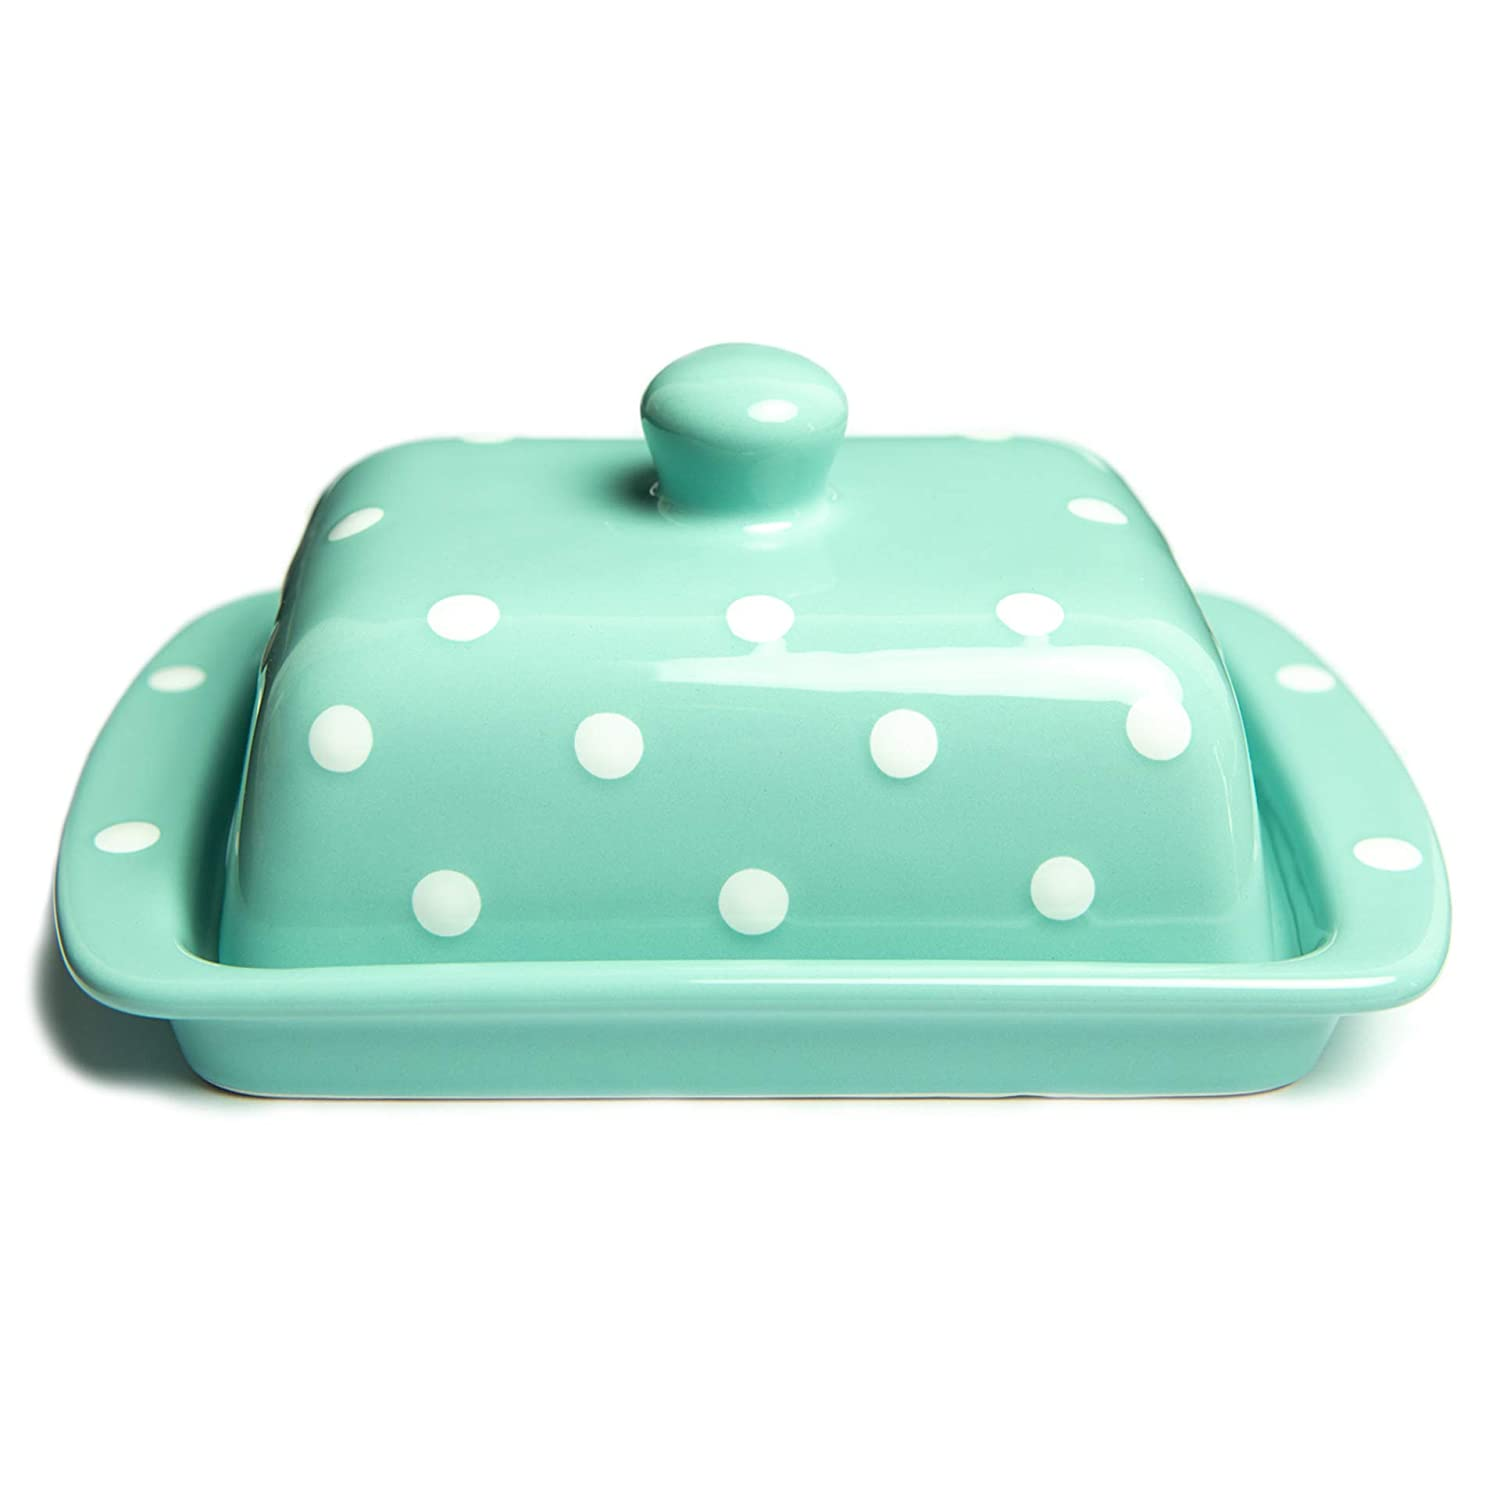 City to Cottage Teal Blue And White Polka Dot Spotty Handmade Hand Painted Ceramic Covered Butter Dish With Lid citytocottage.co.uk